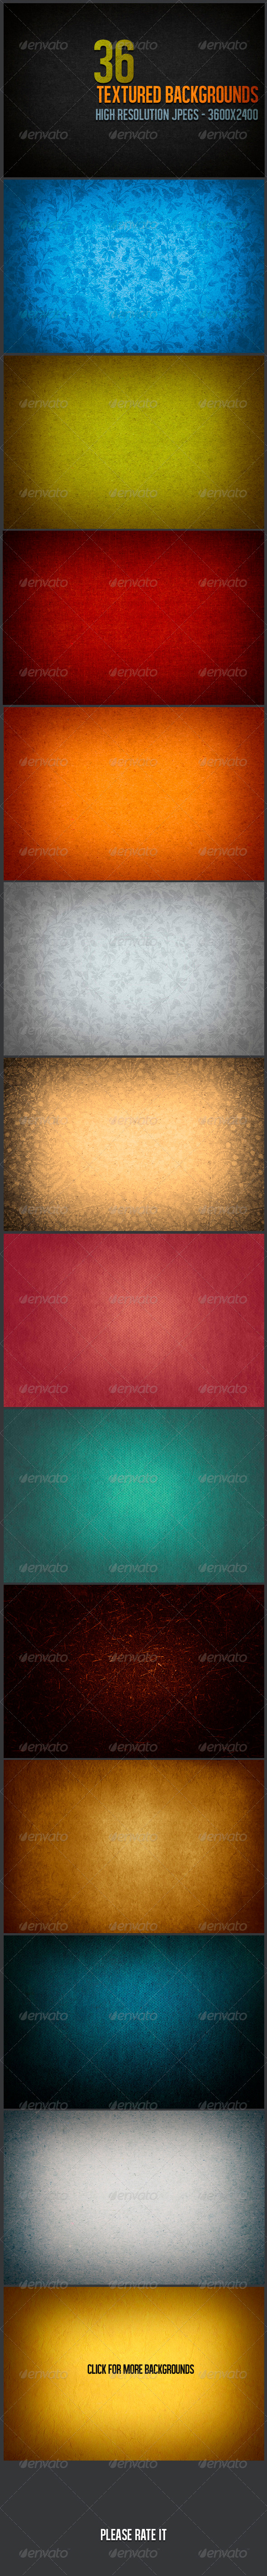 36 Textured Backgrounds